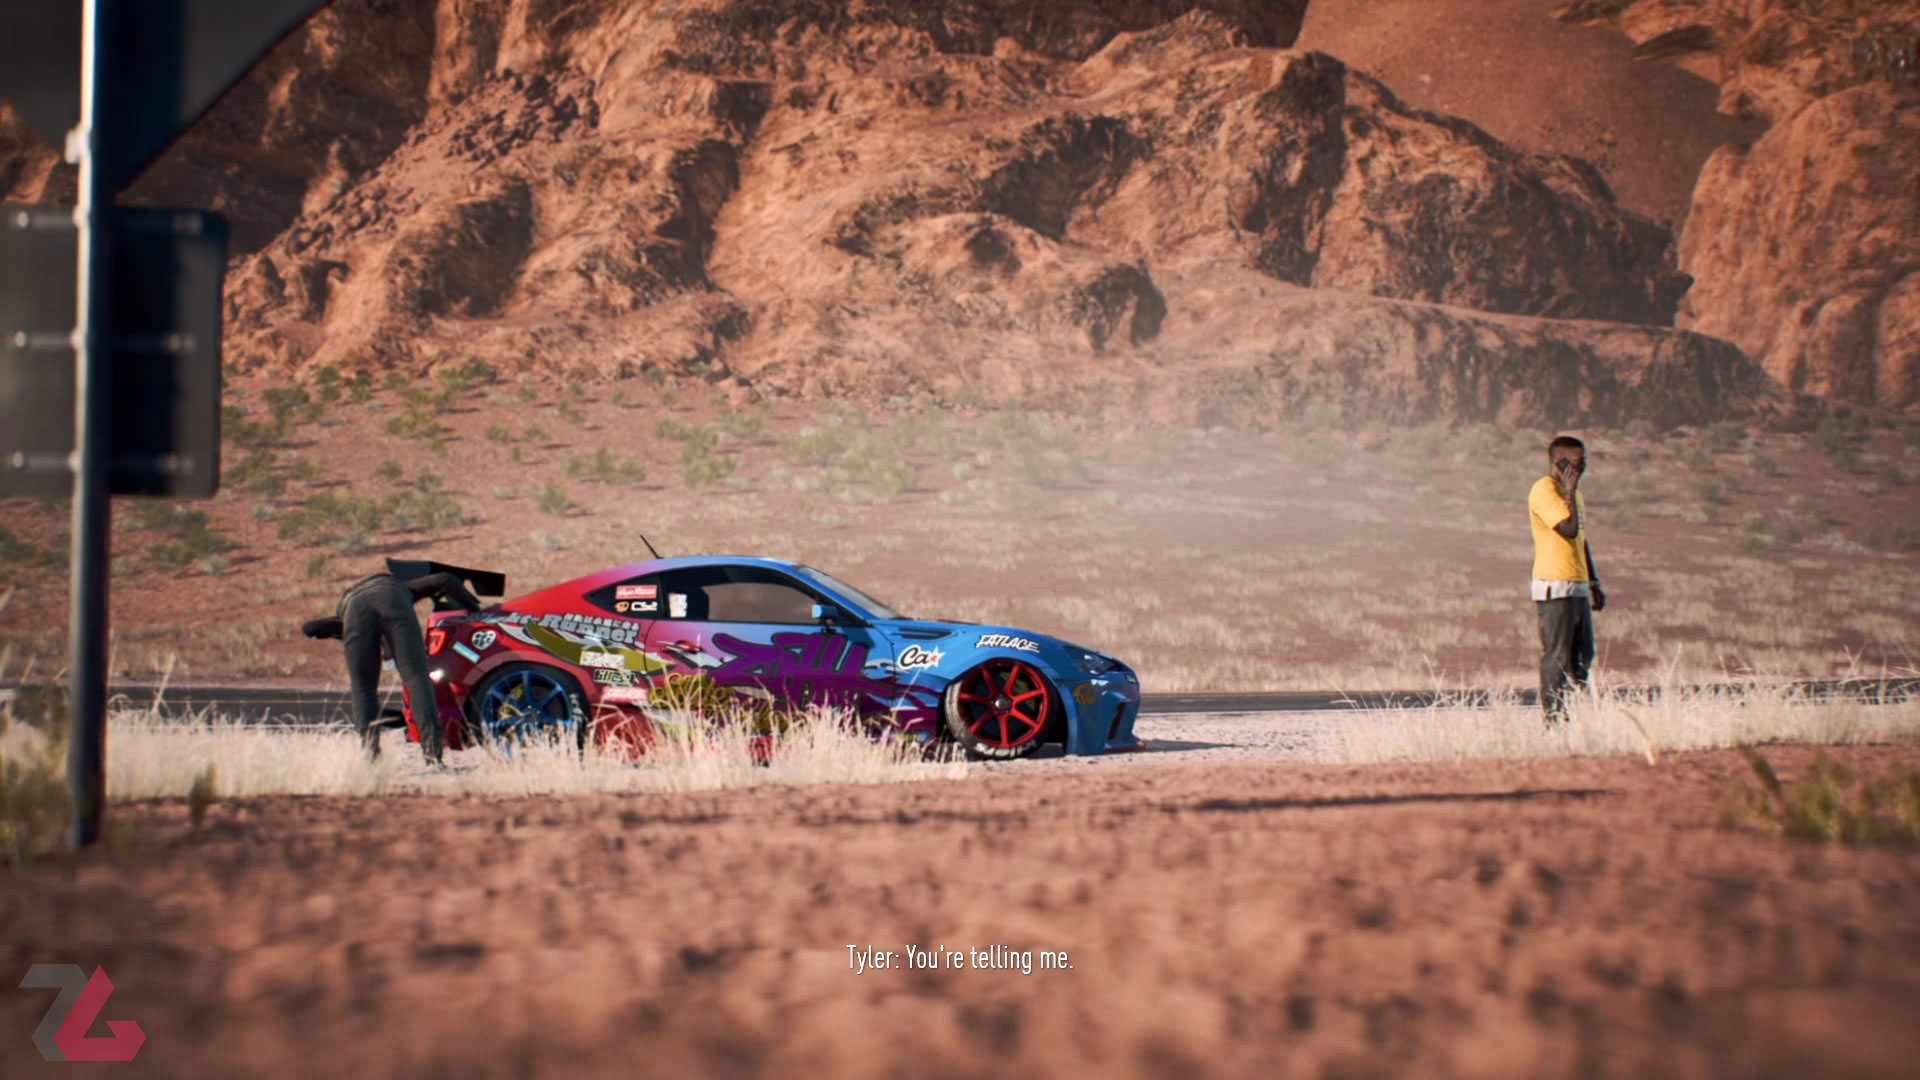 697f8432 0ecb 4b74 8df7 faabf2e23eff - بازی: Need for Speed Payback پلی استیشن ۴